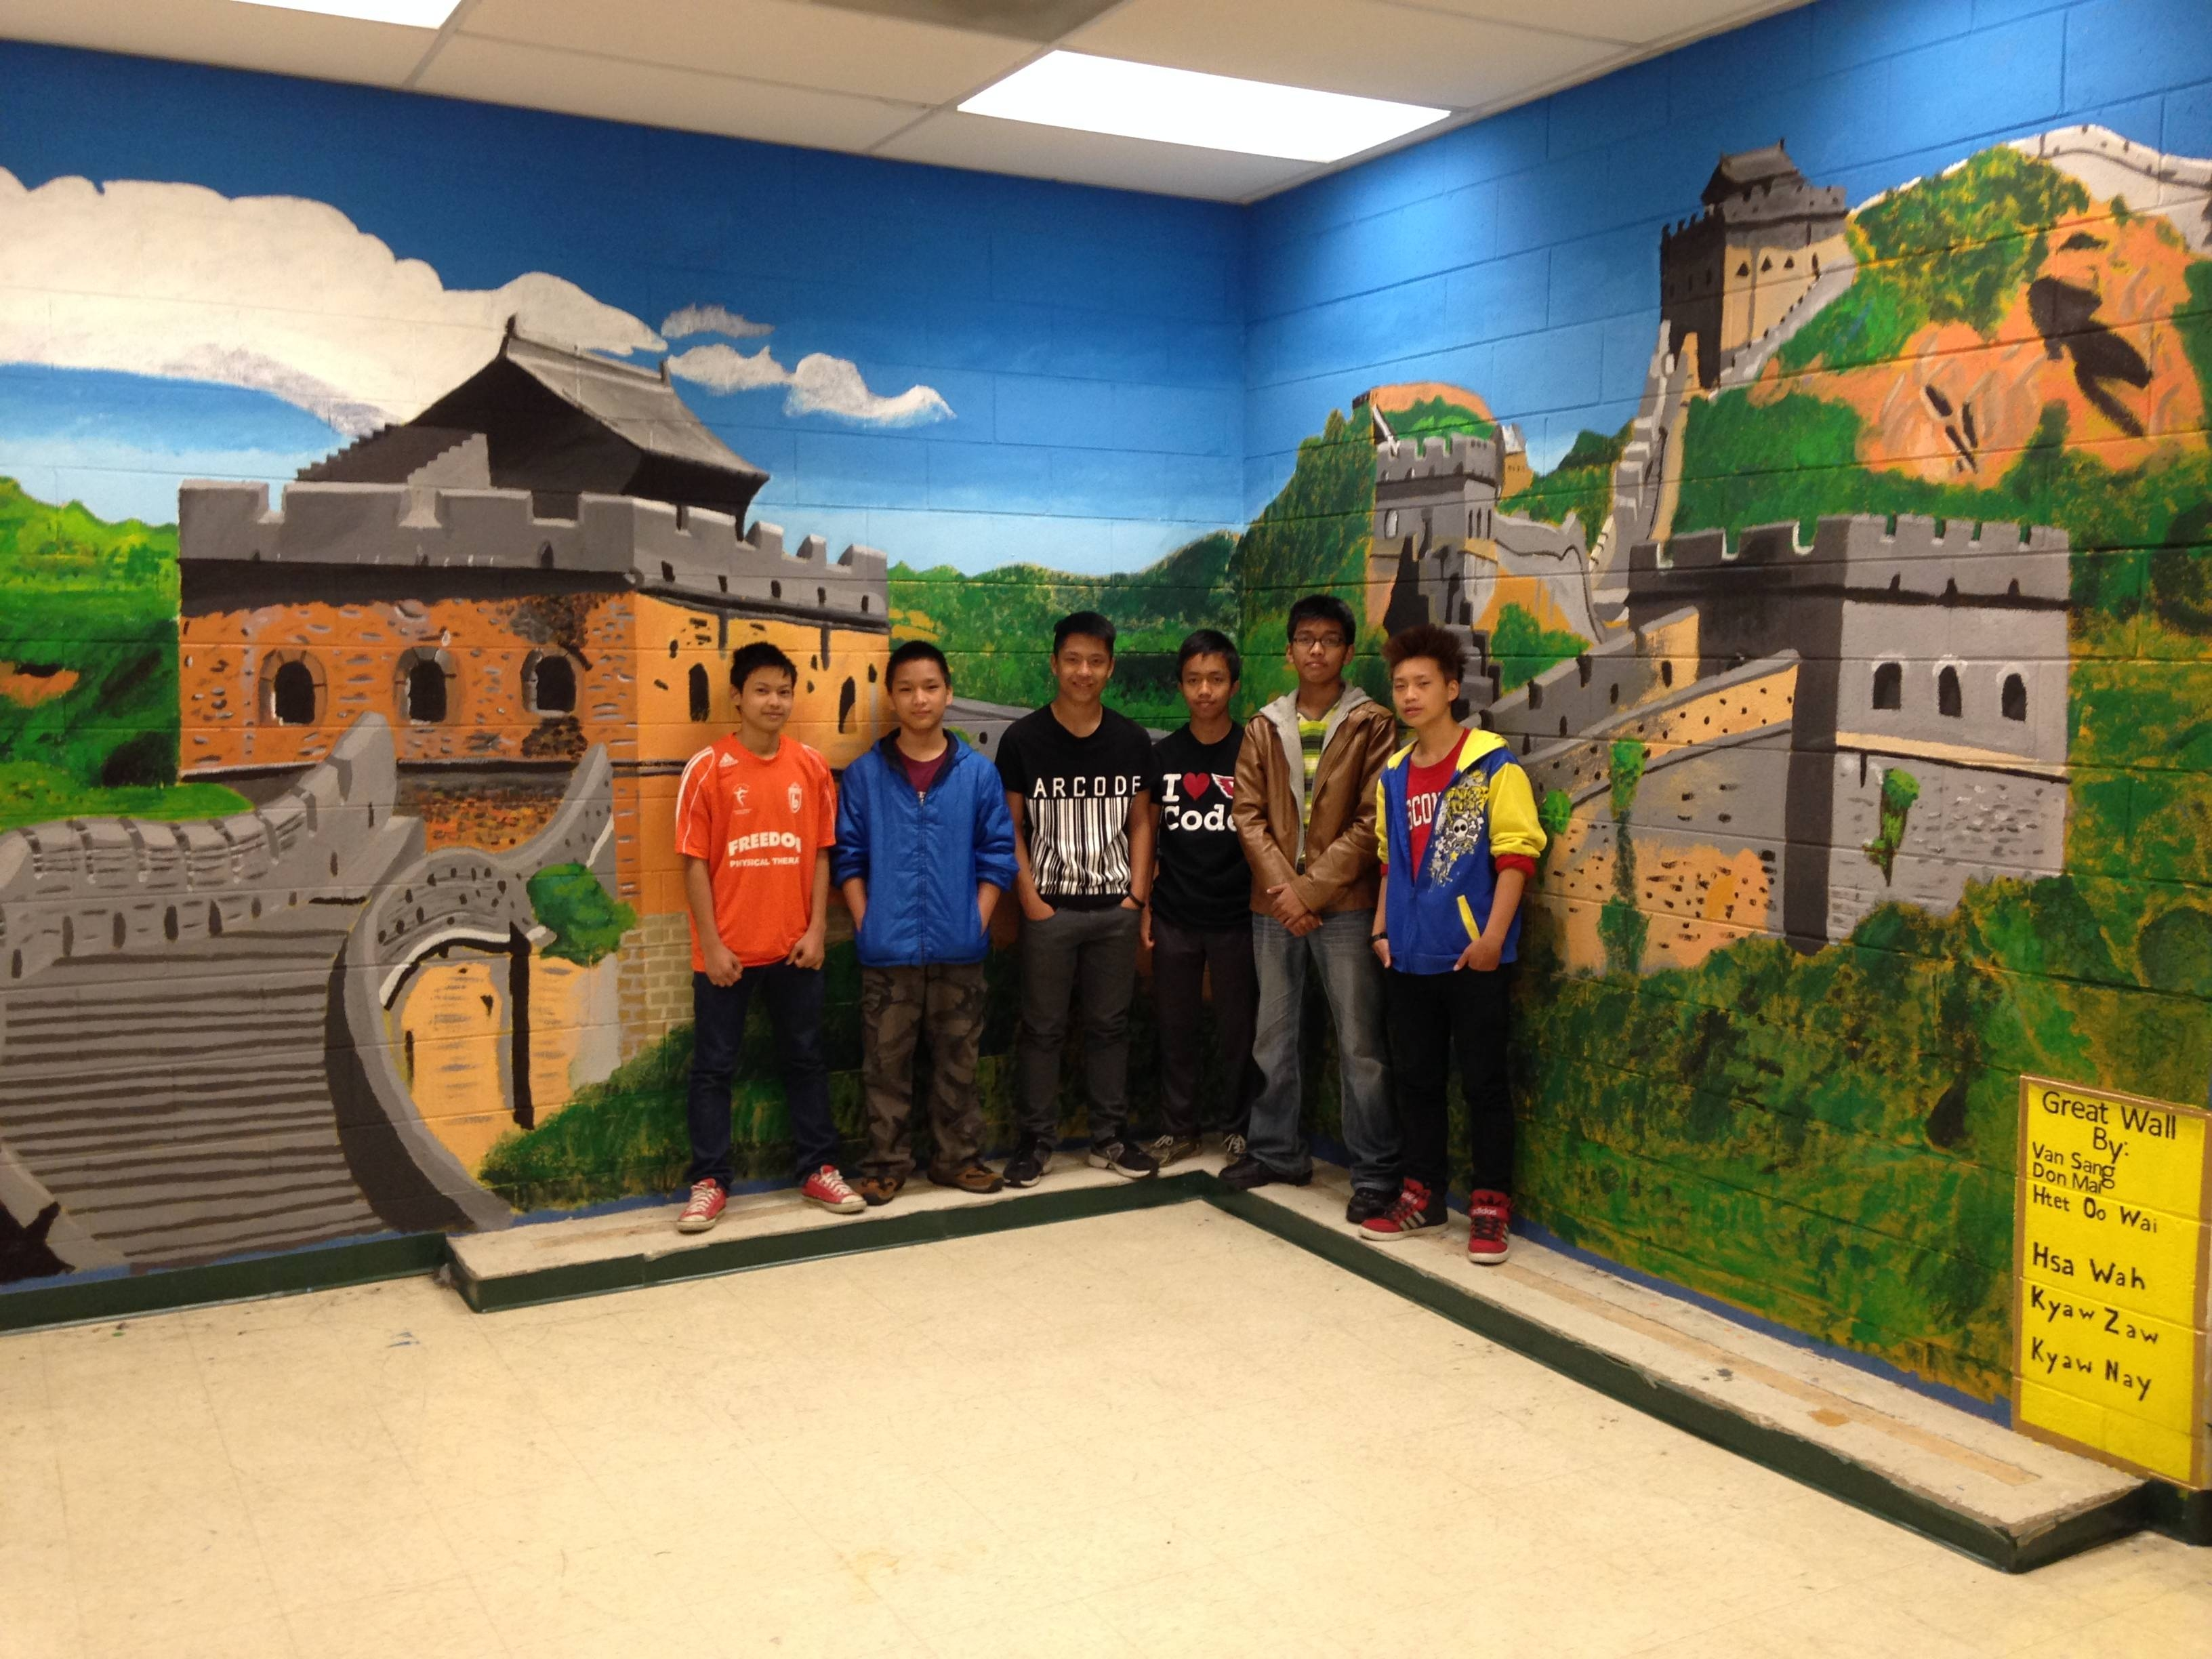 Amazing Wall Murals Cool 23 John Pugh – Amazing 3D Wall Murals For Most Current Great Wall Of China 3D Wall Art (View 4 of 20)